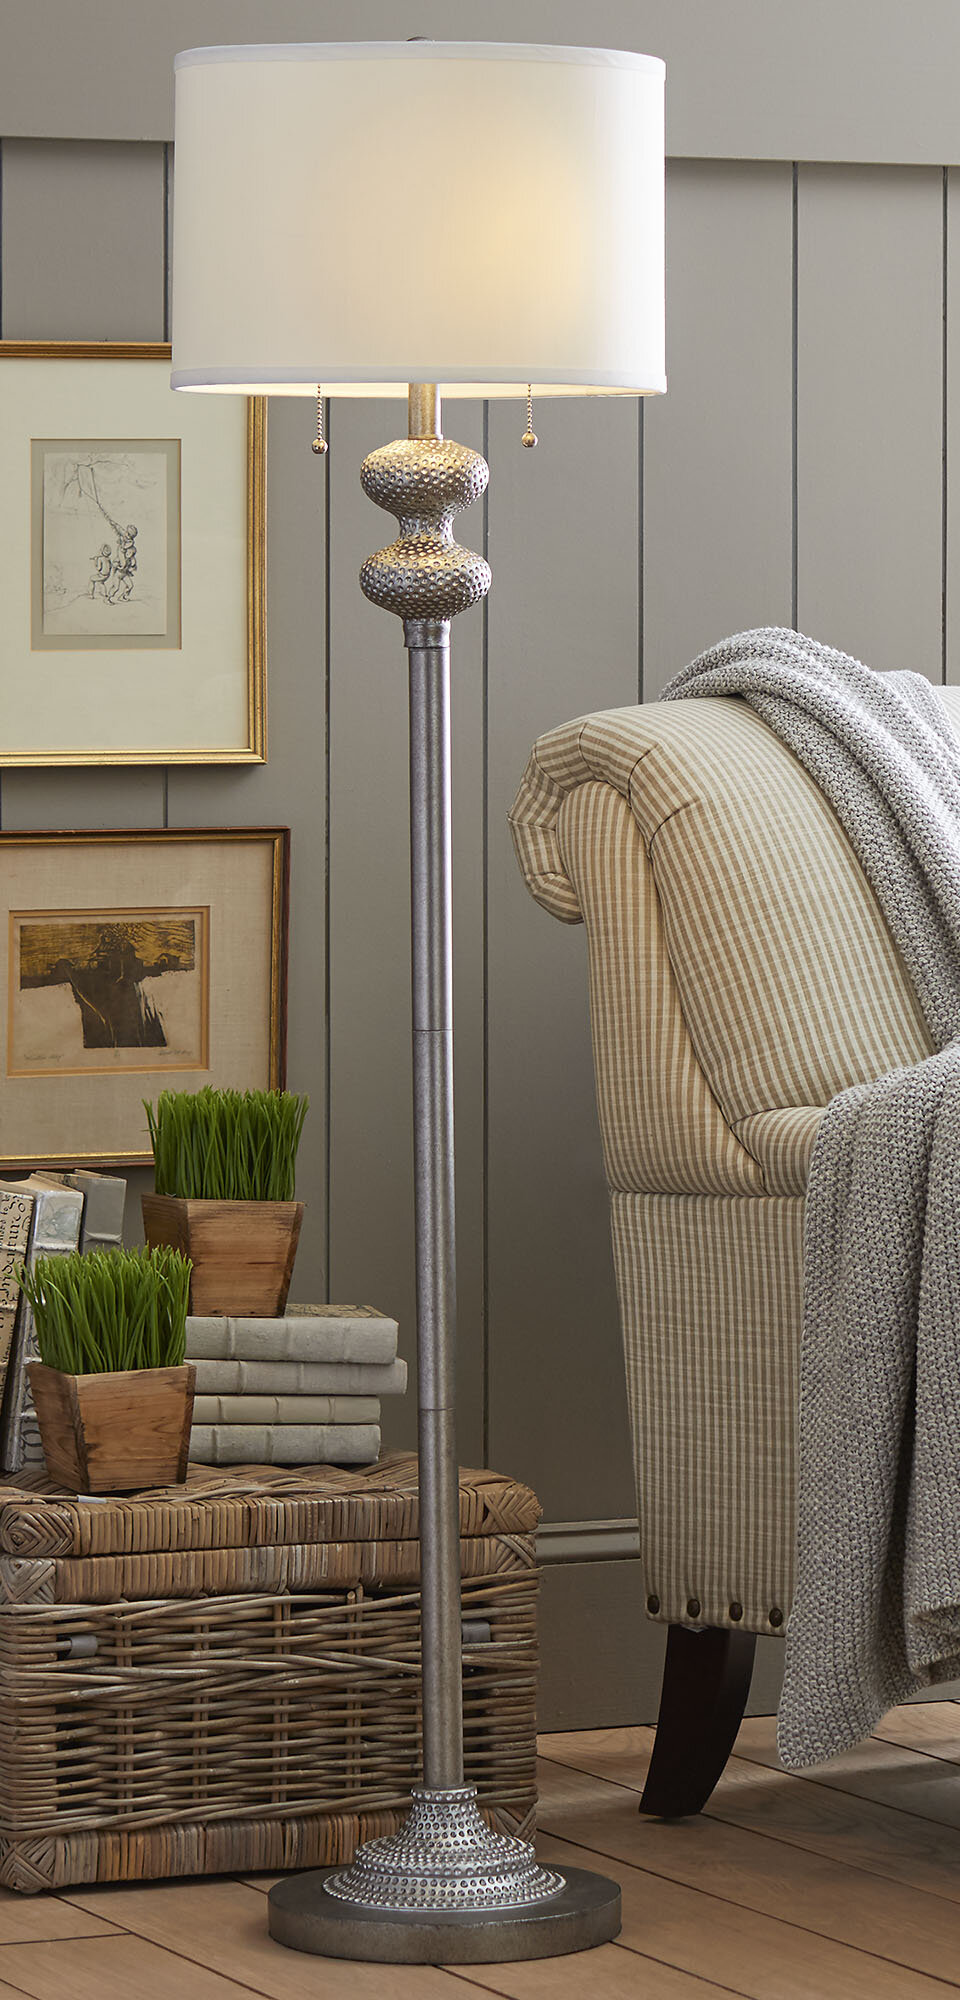 Birch Lane Cumberland 585 Floor Lamp